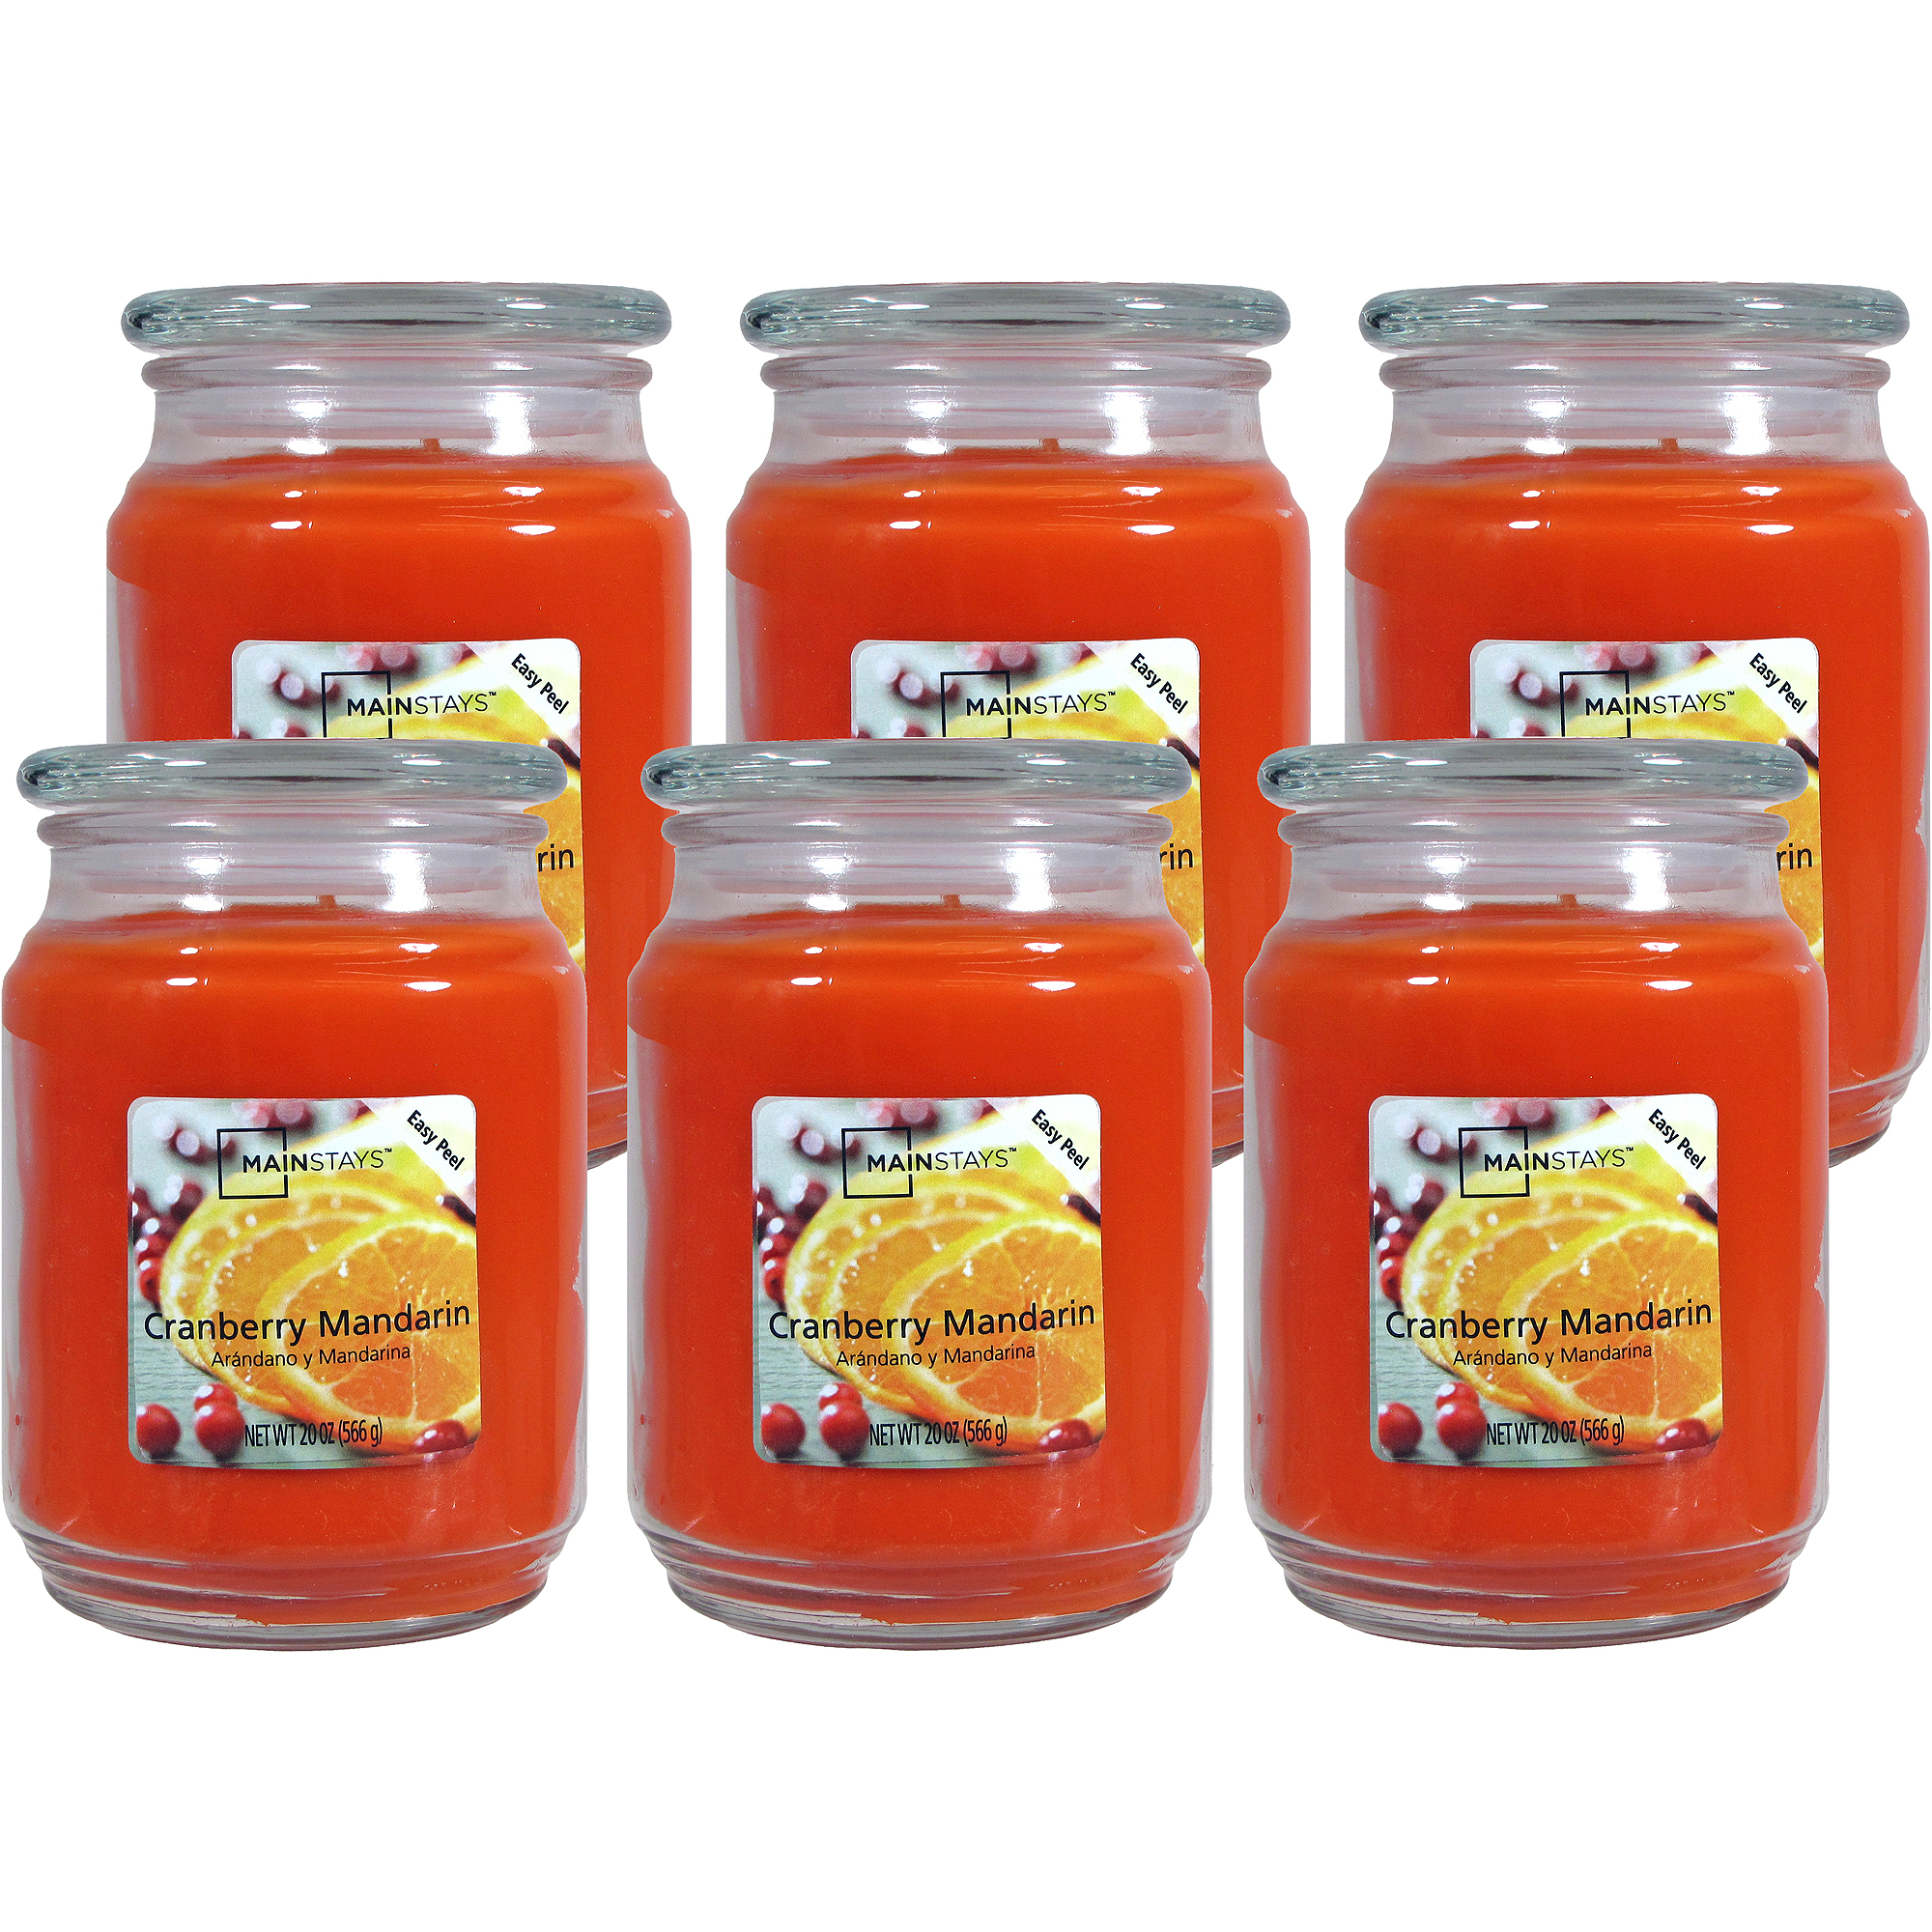 Mainstays 20-oz. Jar Candle, Cranberry Mandarin, Set of 6